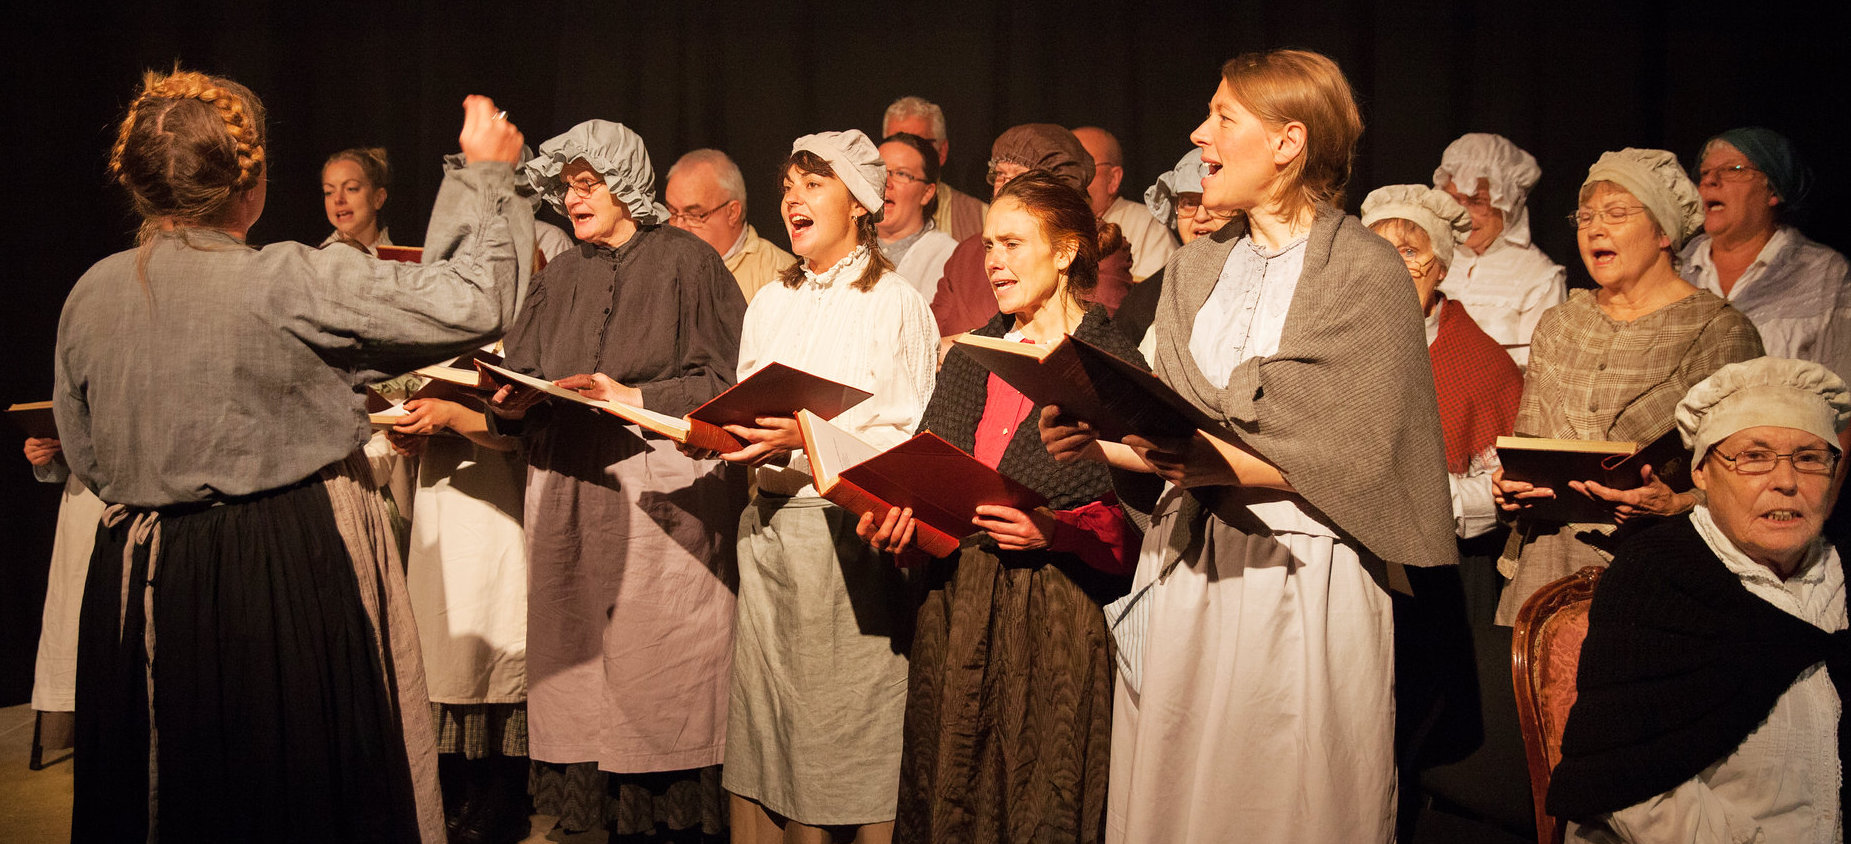 Bedminster Community Choir supporting Acta's performance of Blood on the Coal, 2017